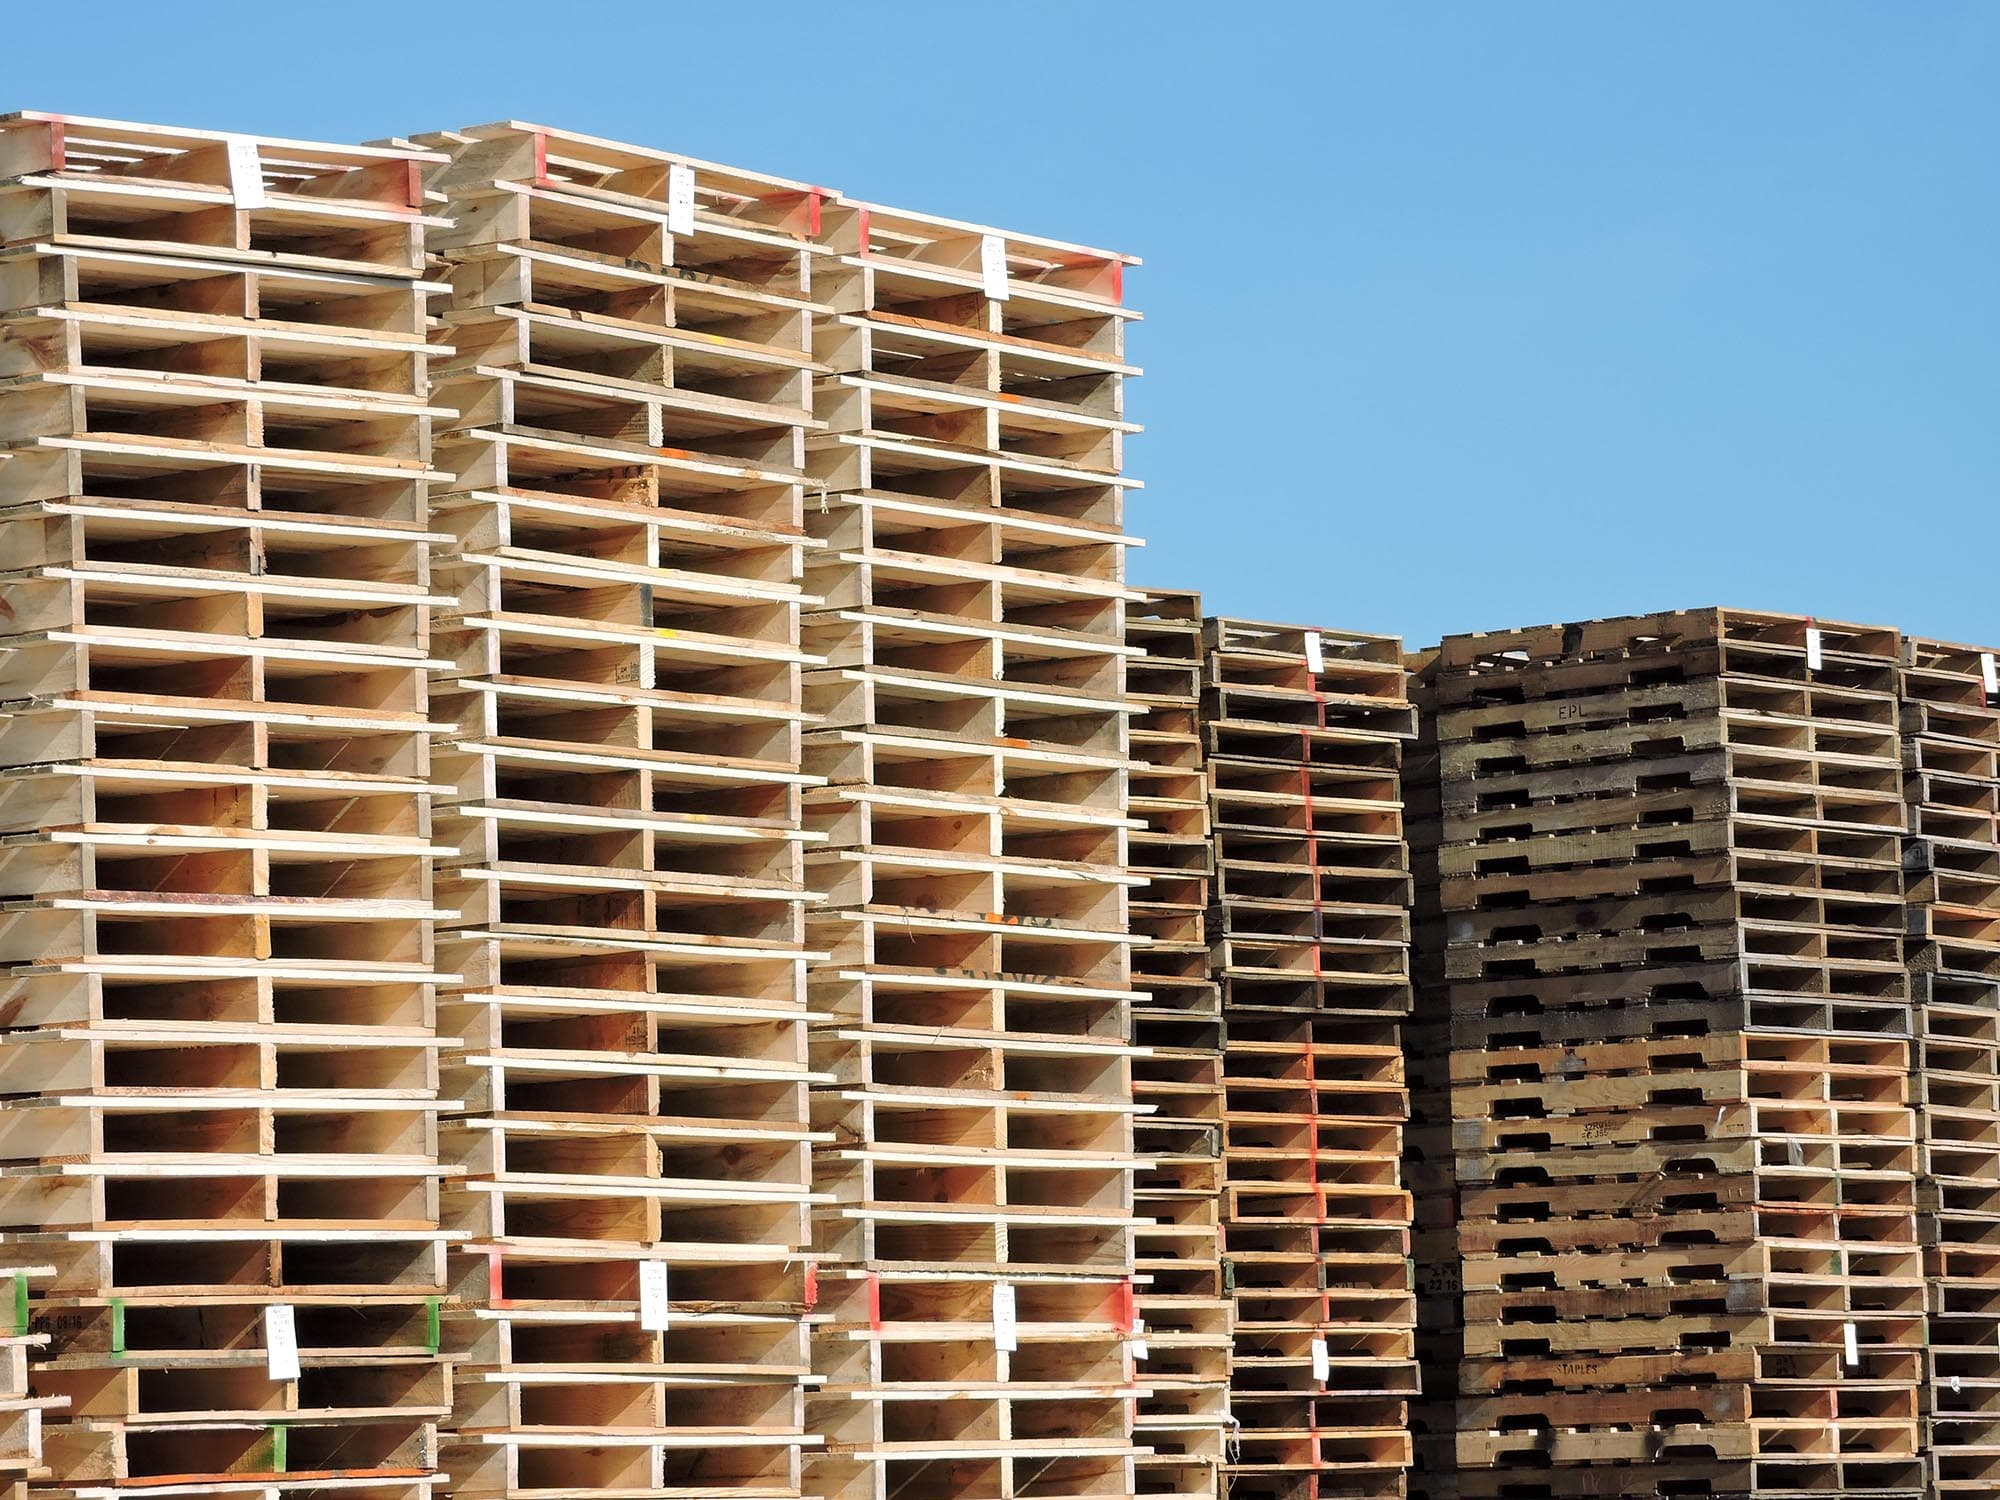 48x40 Wooden Pallets stacked